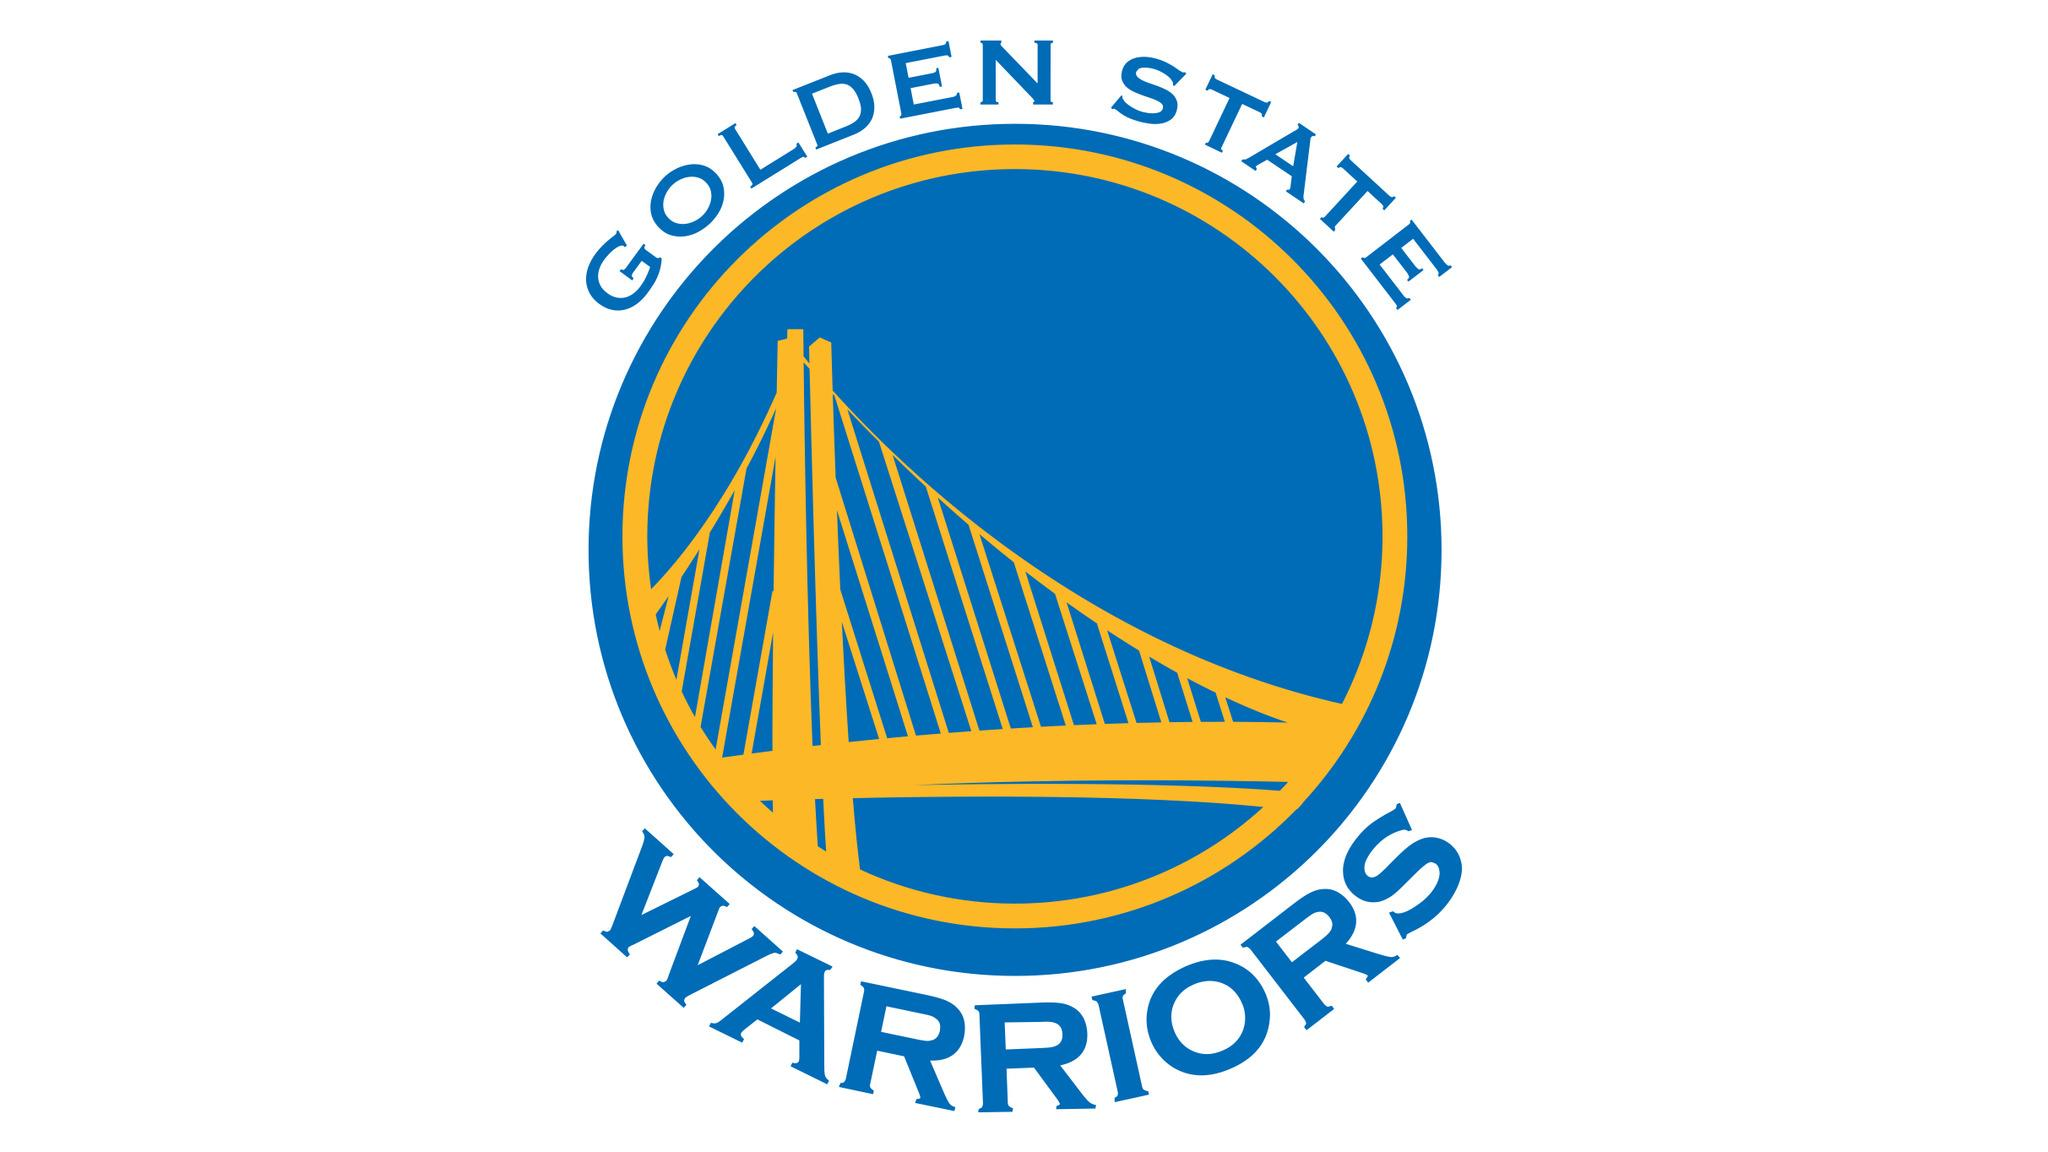 Golden State Warriors vs. Portland Trail Blazers